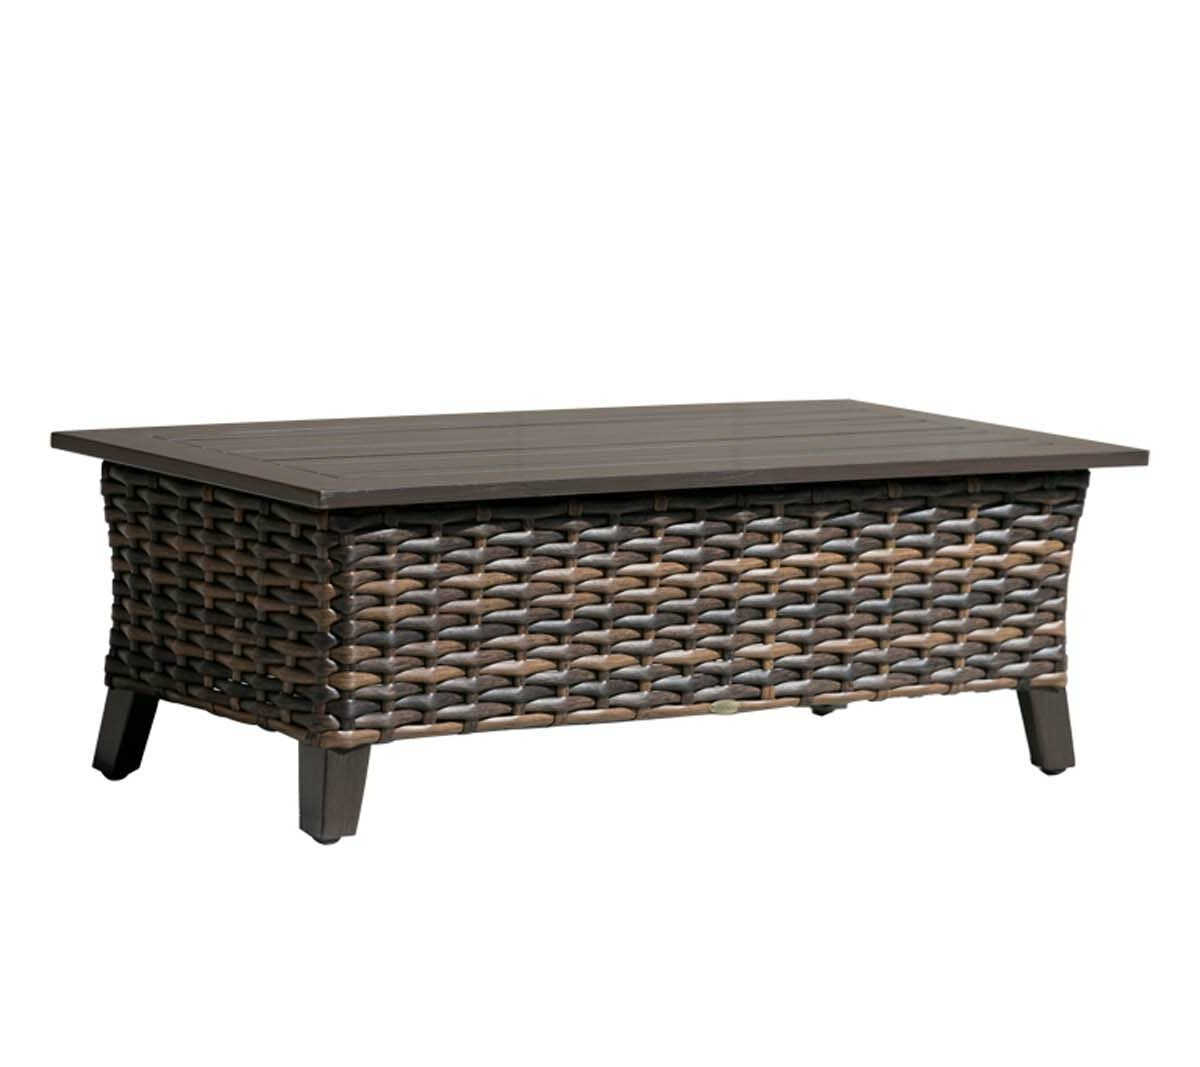 Whidbey island coffee table.